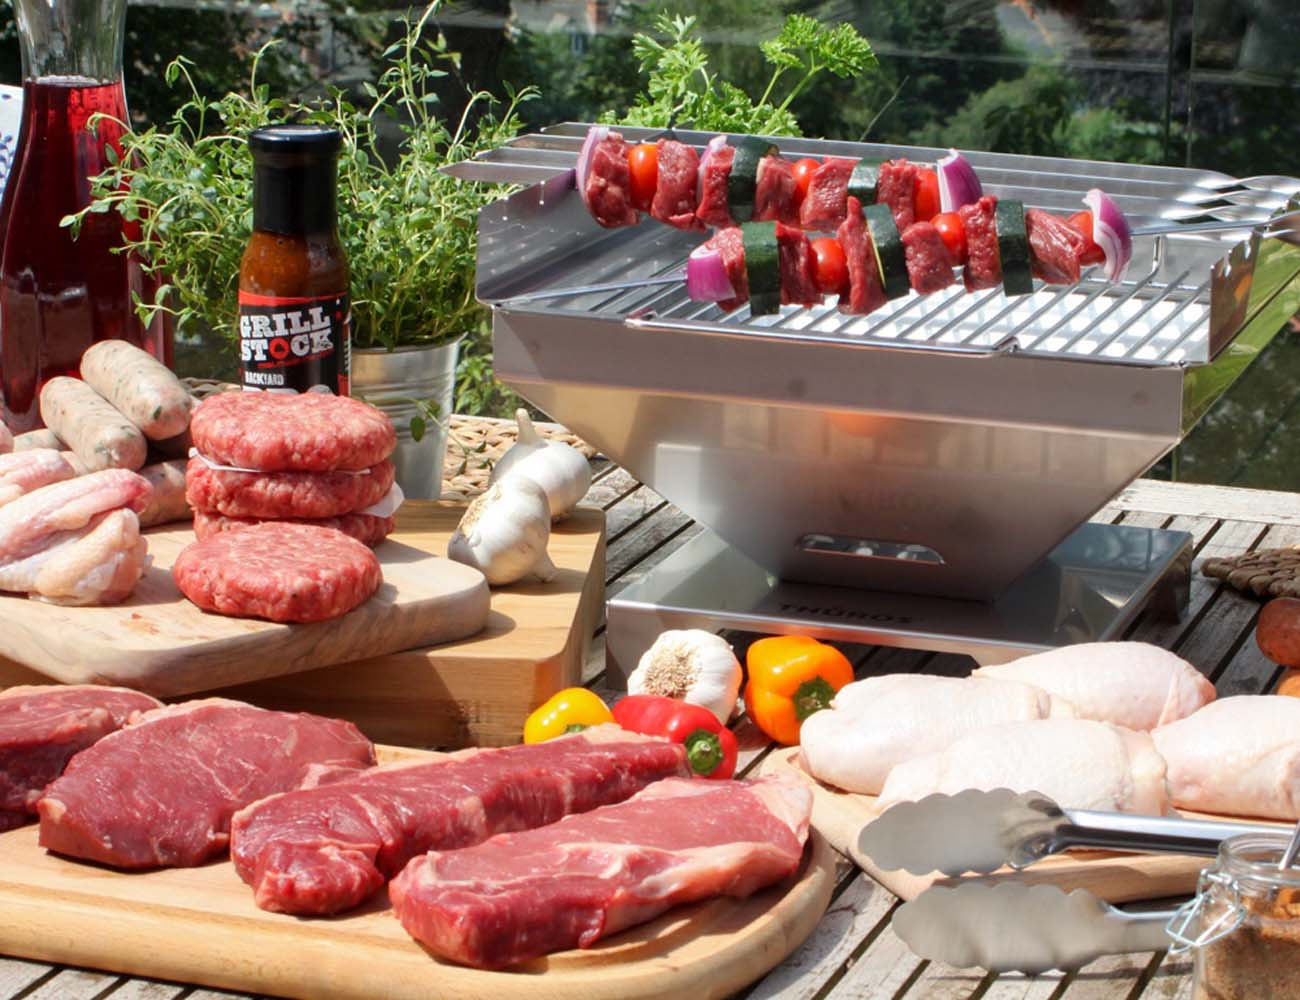 Thuros – Tabletop BBQ and Grill